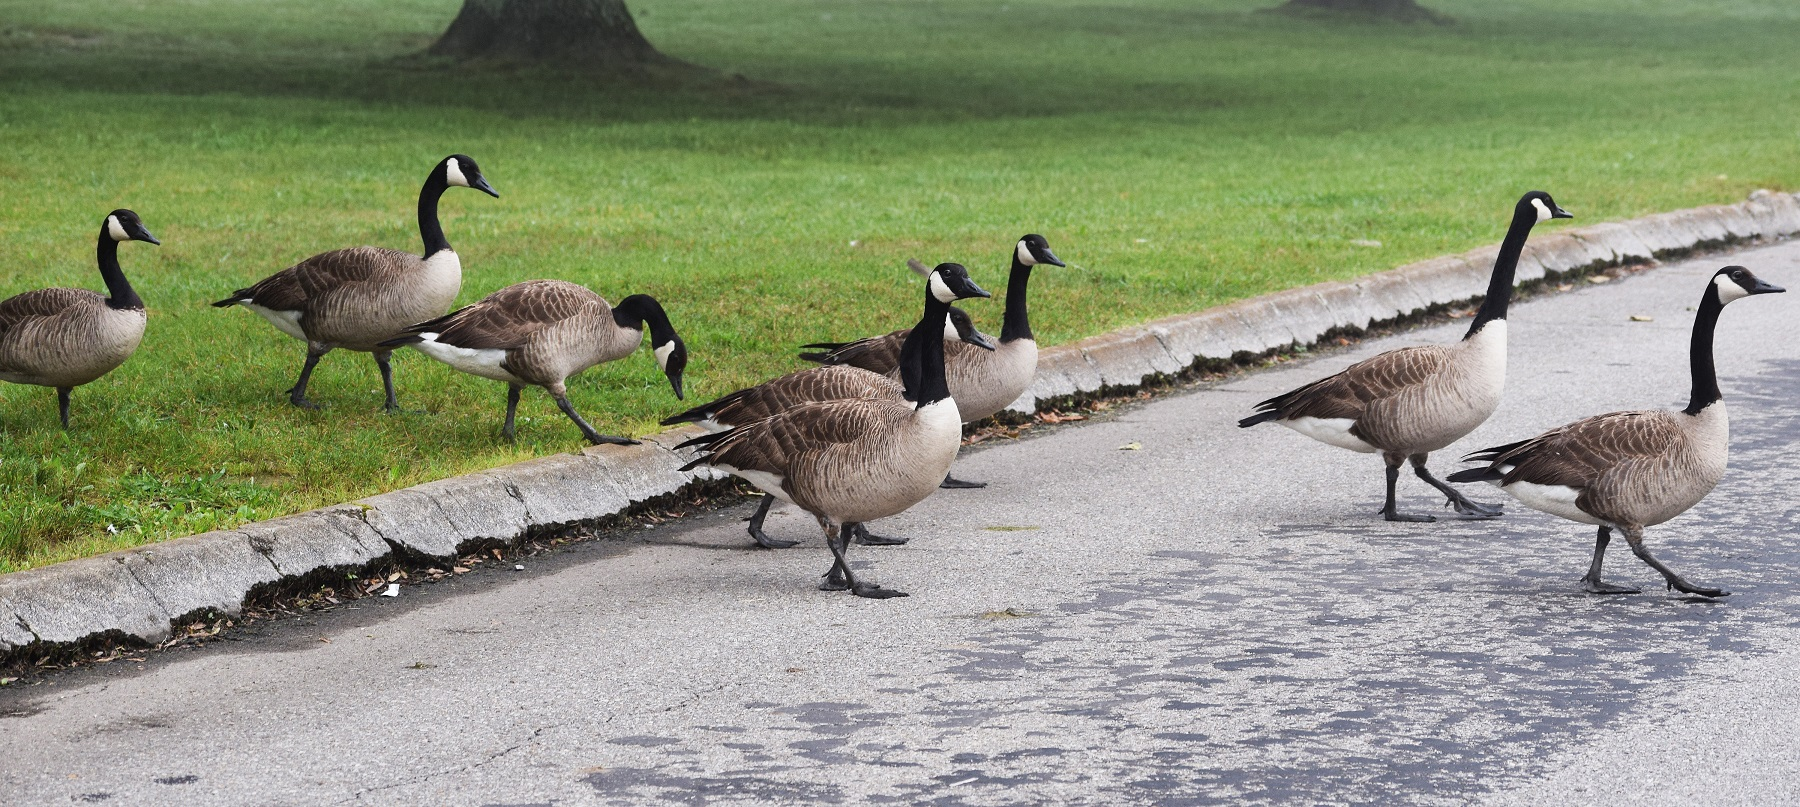 Canada Geese crossing the road